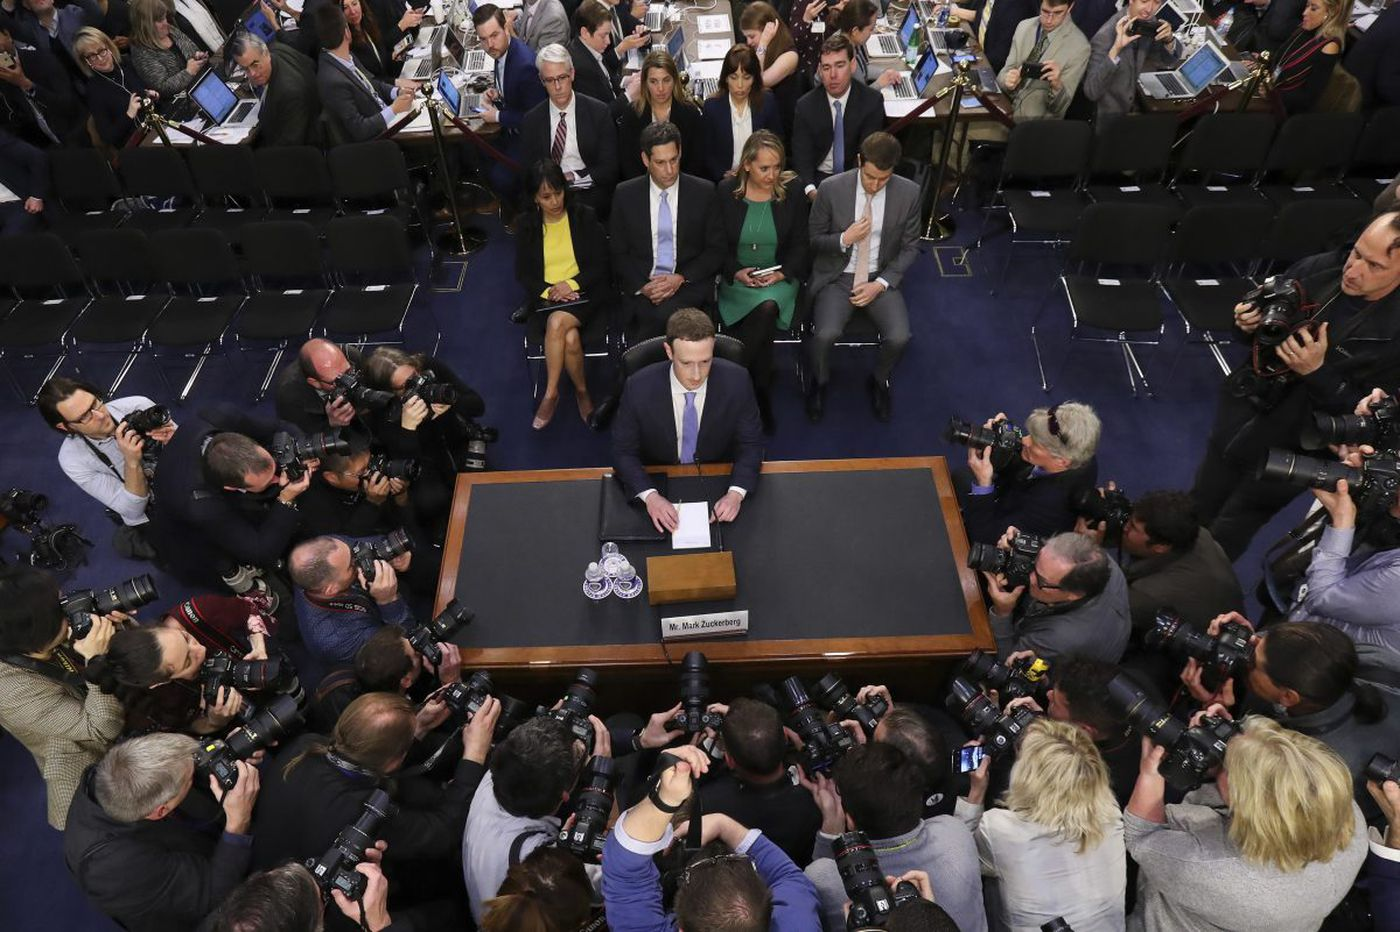 Congress grilled Facebook, but now it needs to act | Editorial